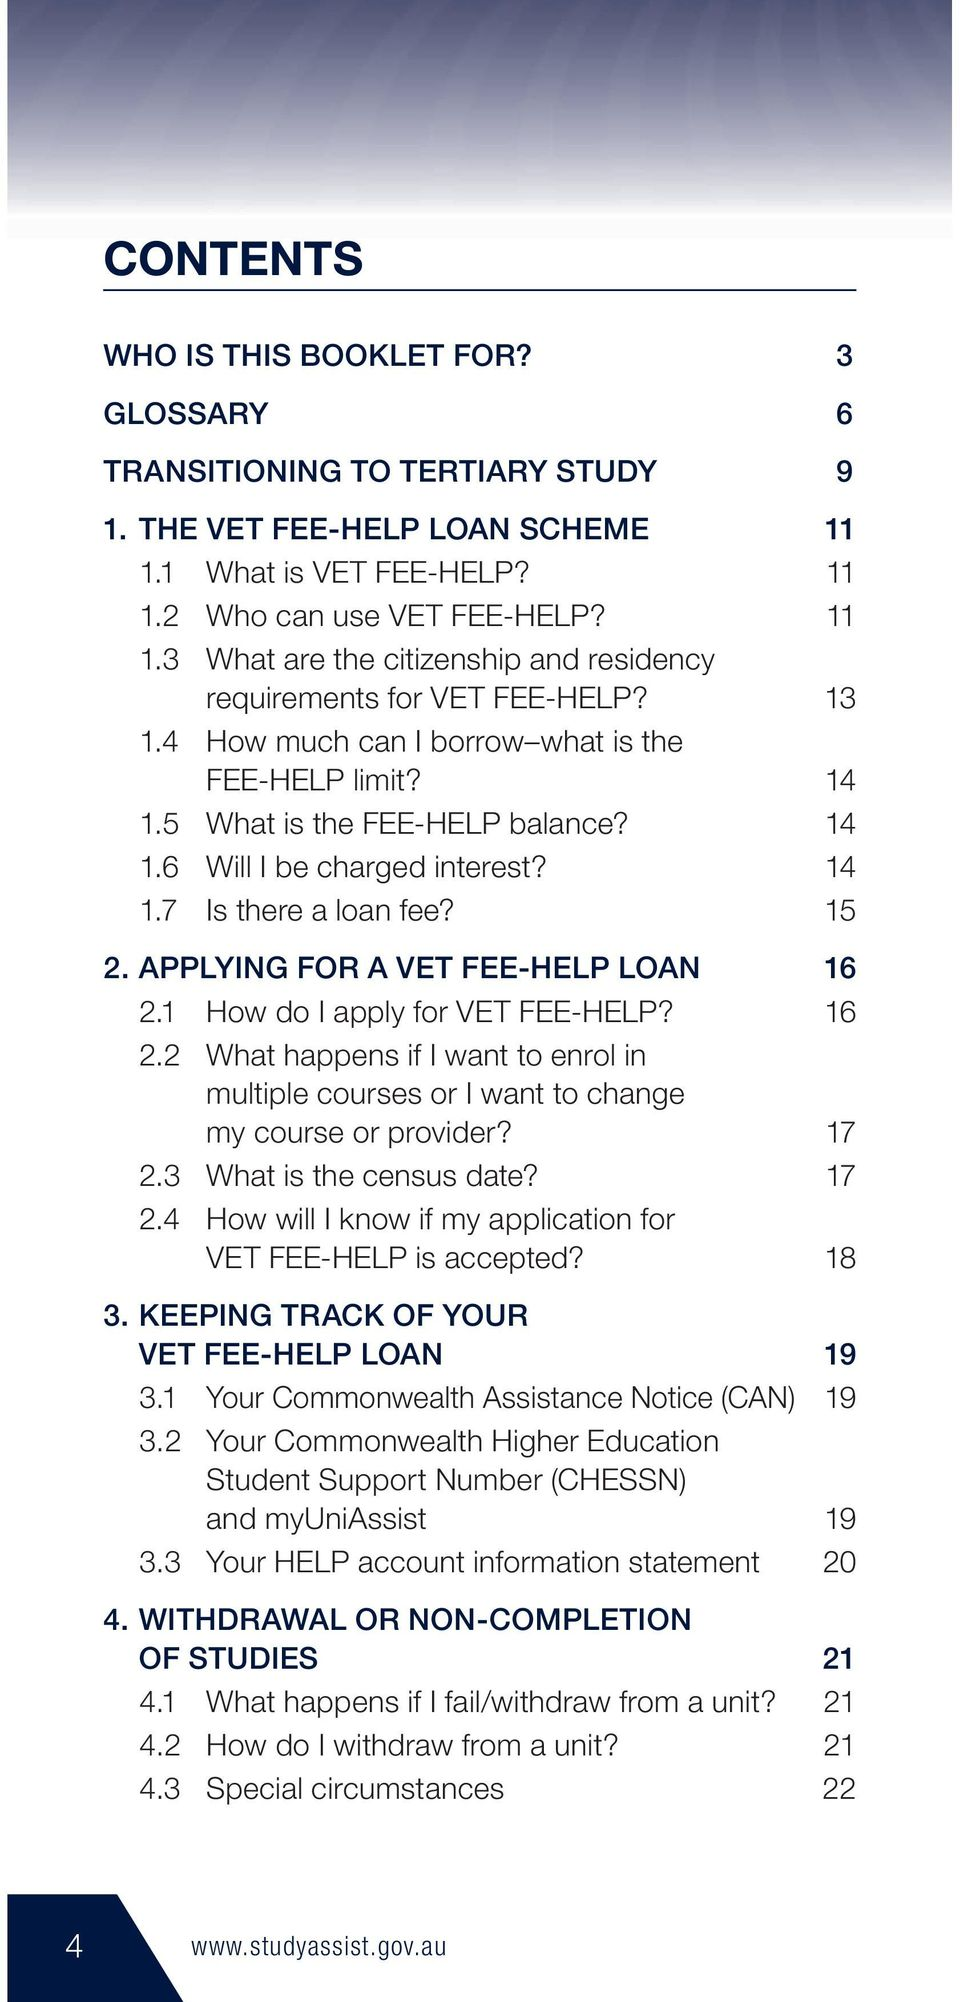 APPLYING FOR A VET FEE-HELP LOAN 16 2.1 How do I apply for VET FEE-HELP? 16 2.2 What happens if I want to enrol in multiple courses or I want to change my course or provider? 17 2.